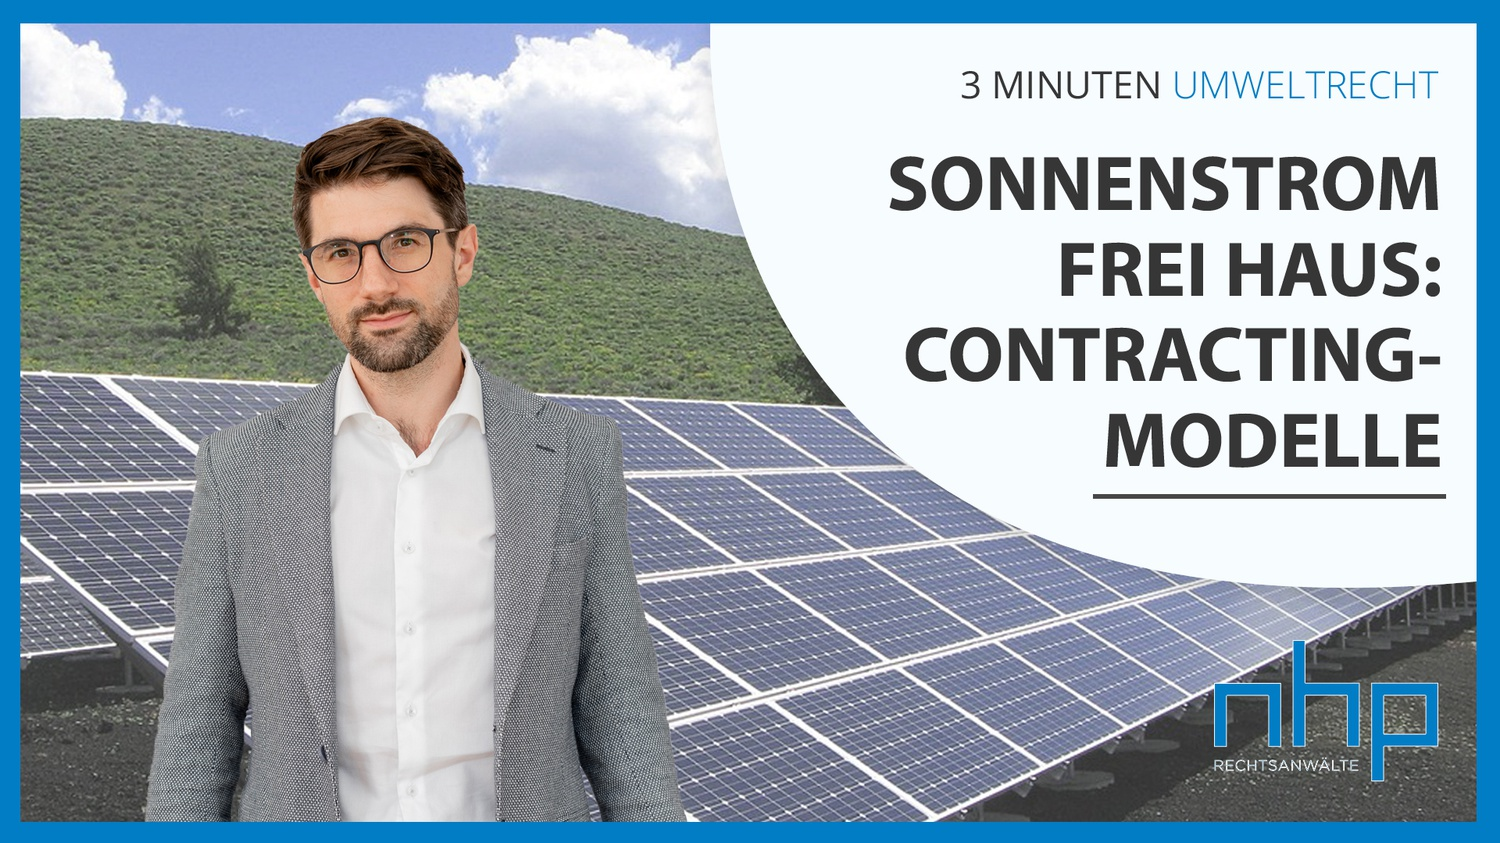 Sonnenstrom frei Haus: Contracting-Modelle